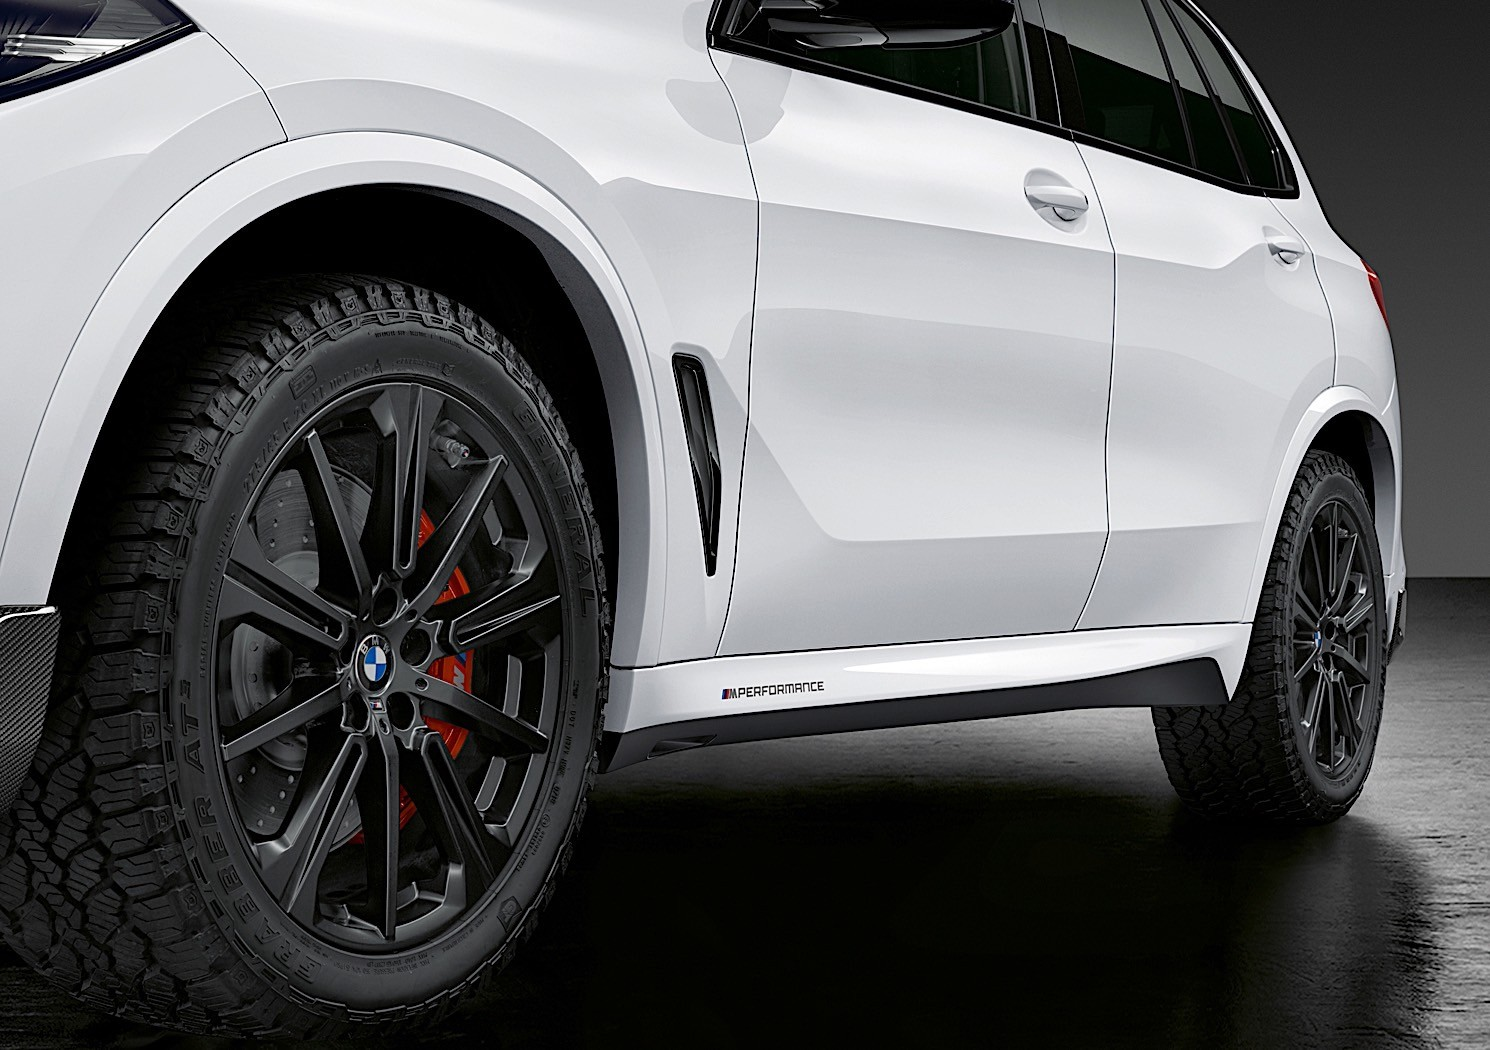 BMW X Series >> 2019 BMW X5 M Performance Parts Are All About Driving Analysis and Carbon Fiber - autoevolution